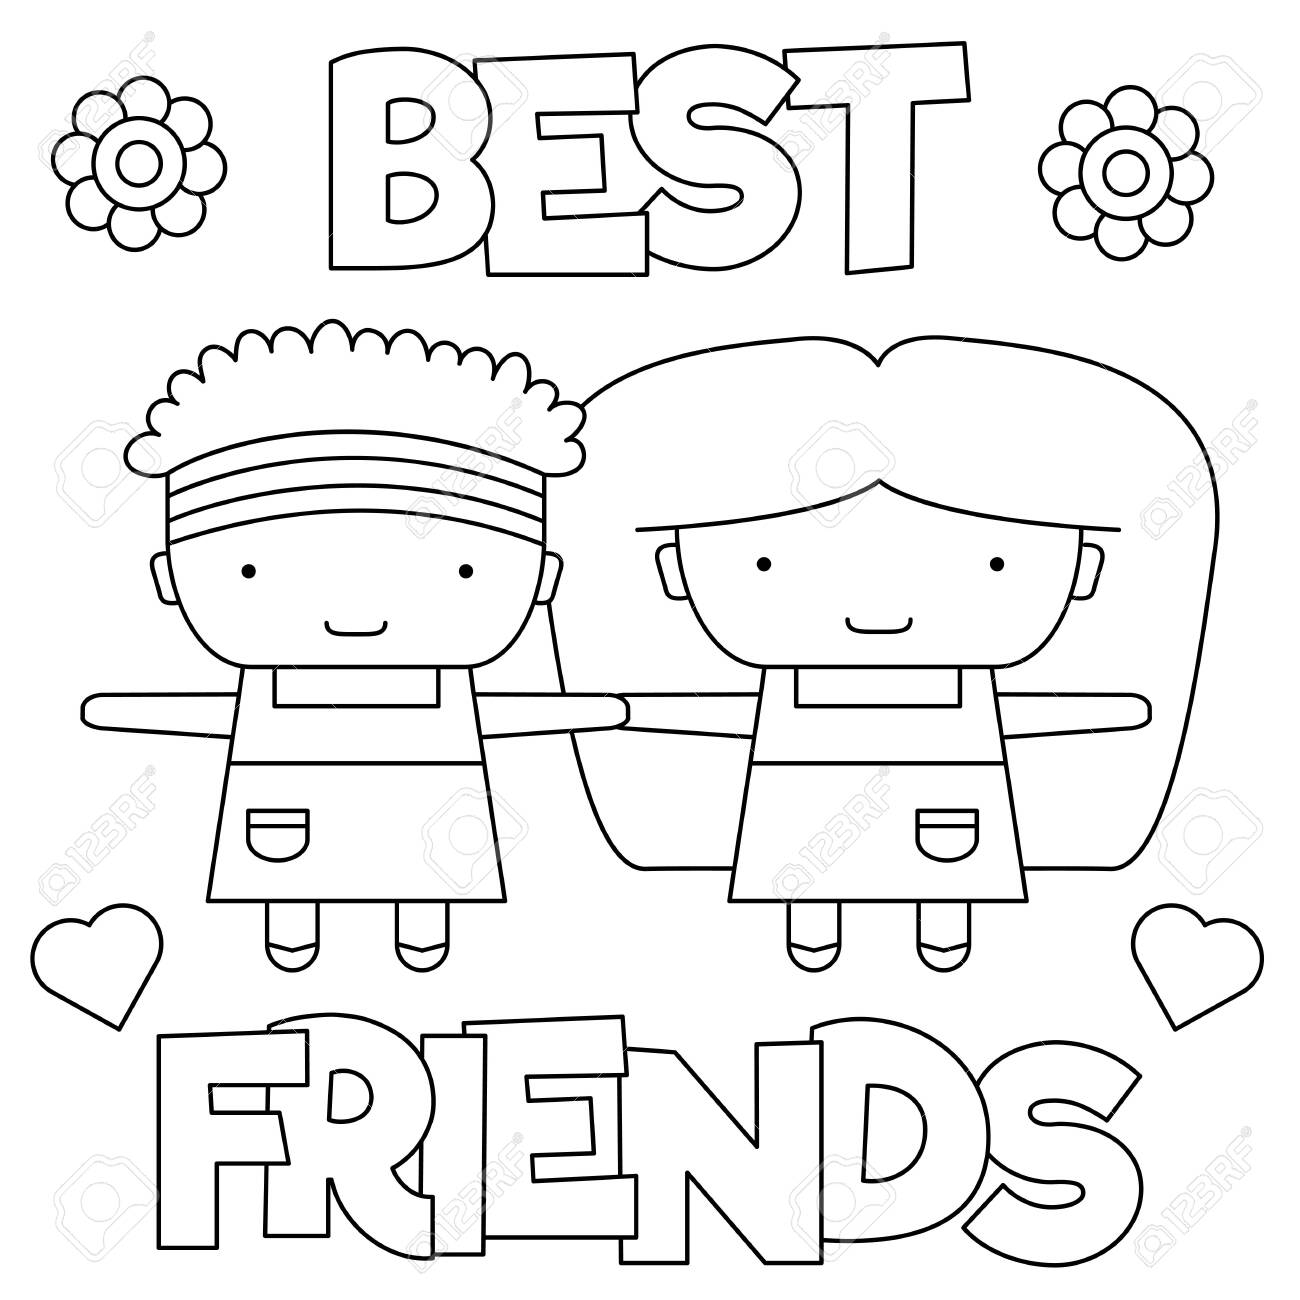 Best Friends Coloring Page Black And White Vector Illustration Royalty Free Cliparts Vectors And Stock Illustration Image 128075945